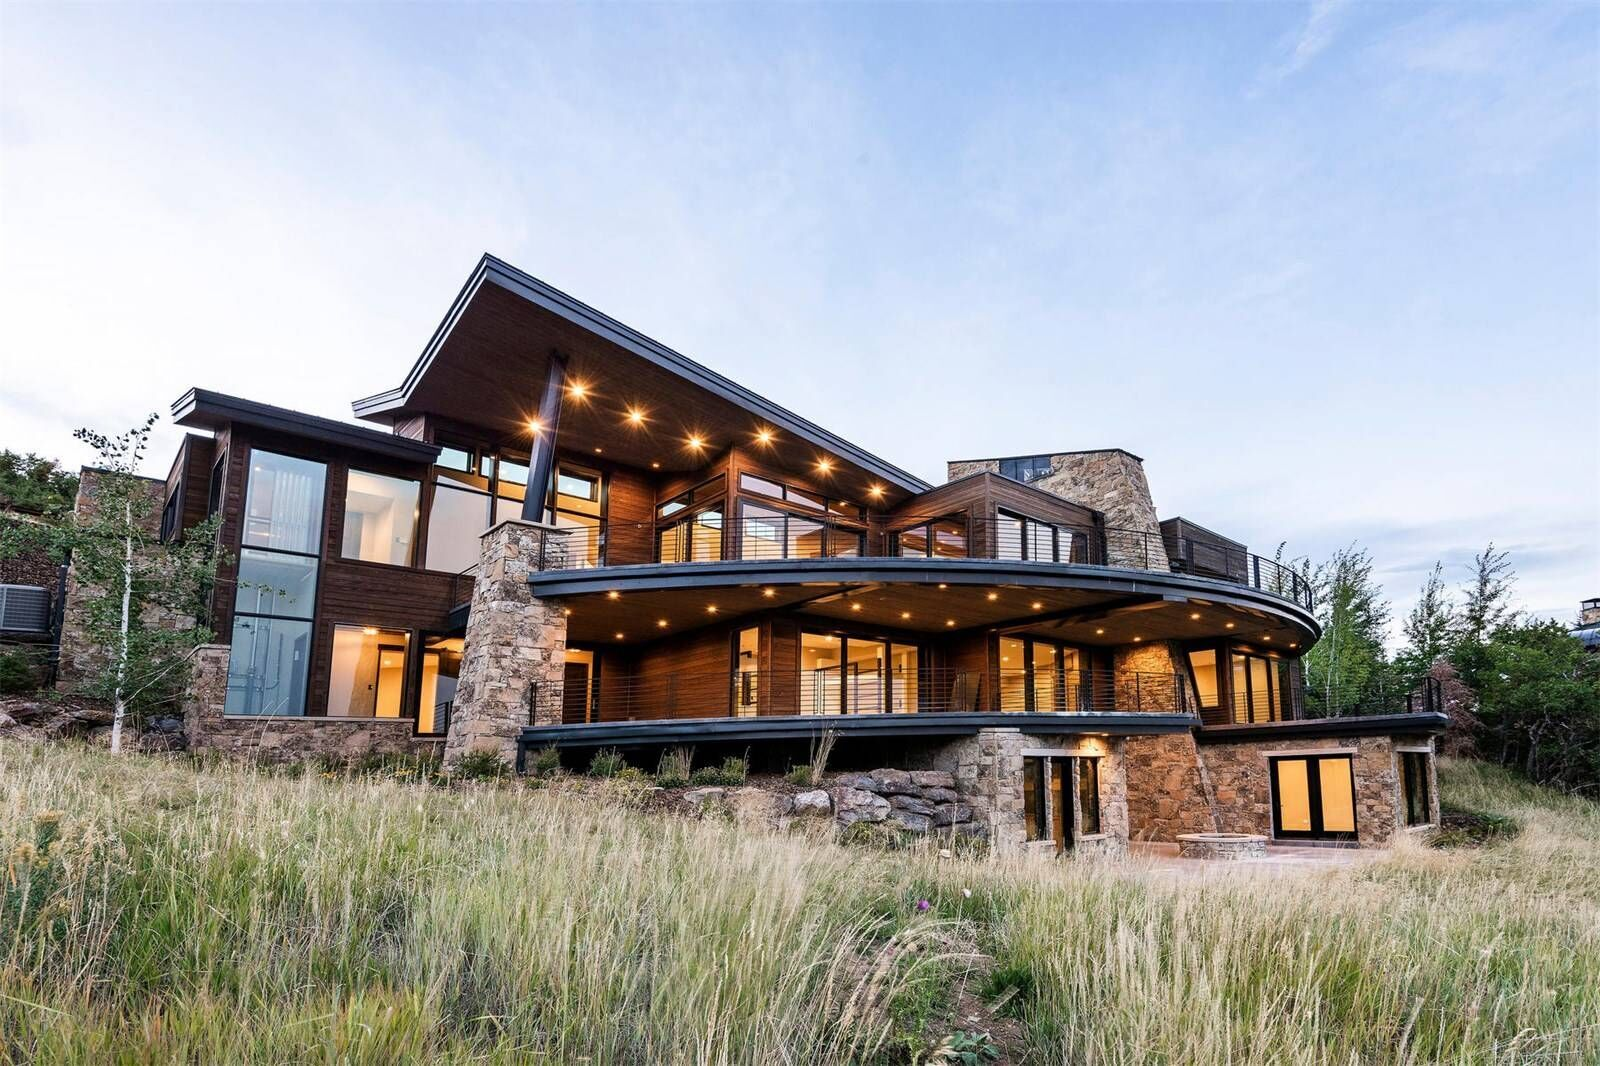 Modern Mountain Style A Look At Today S Alpine Design Trends